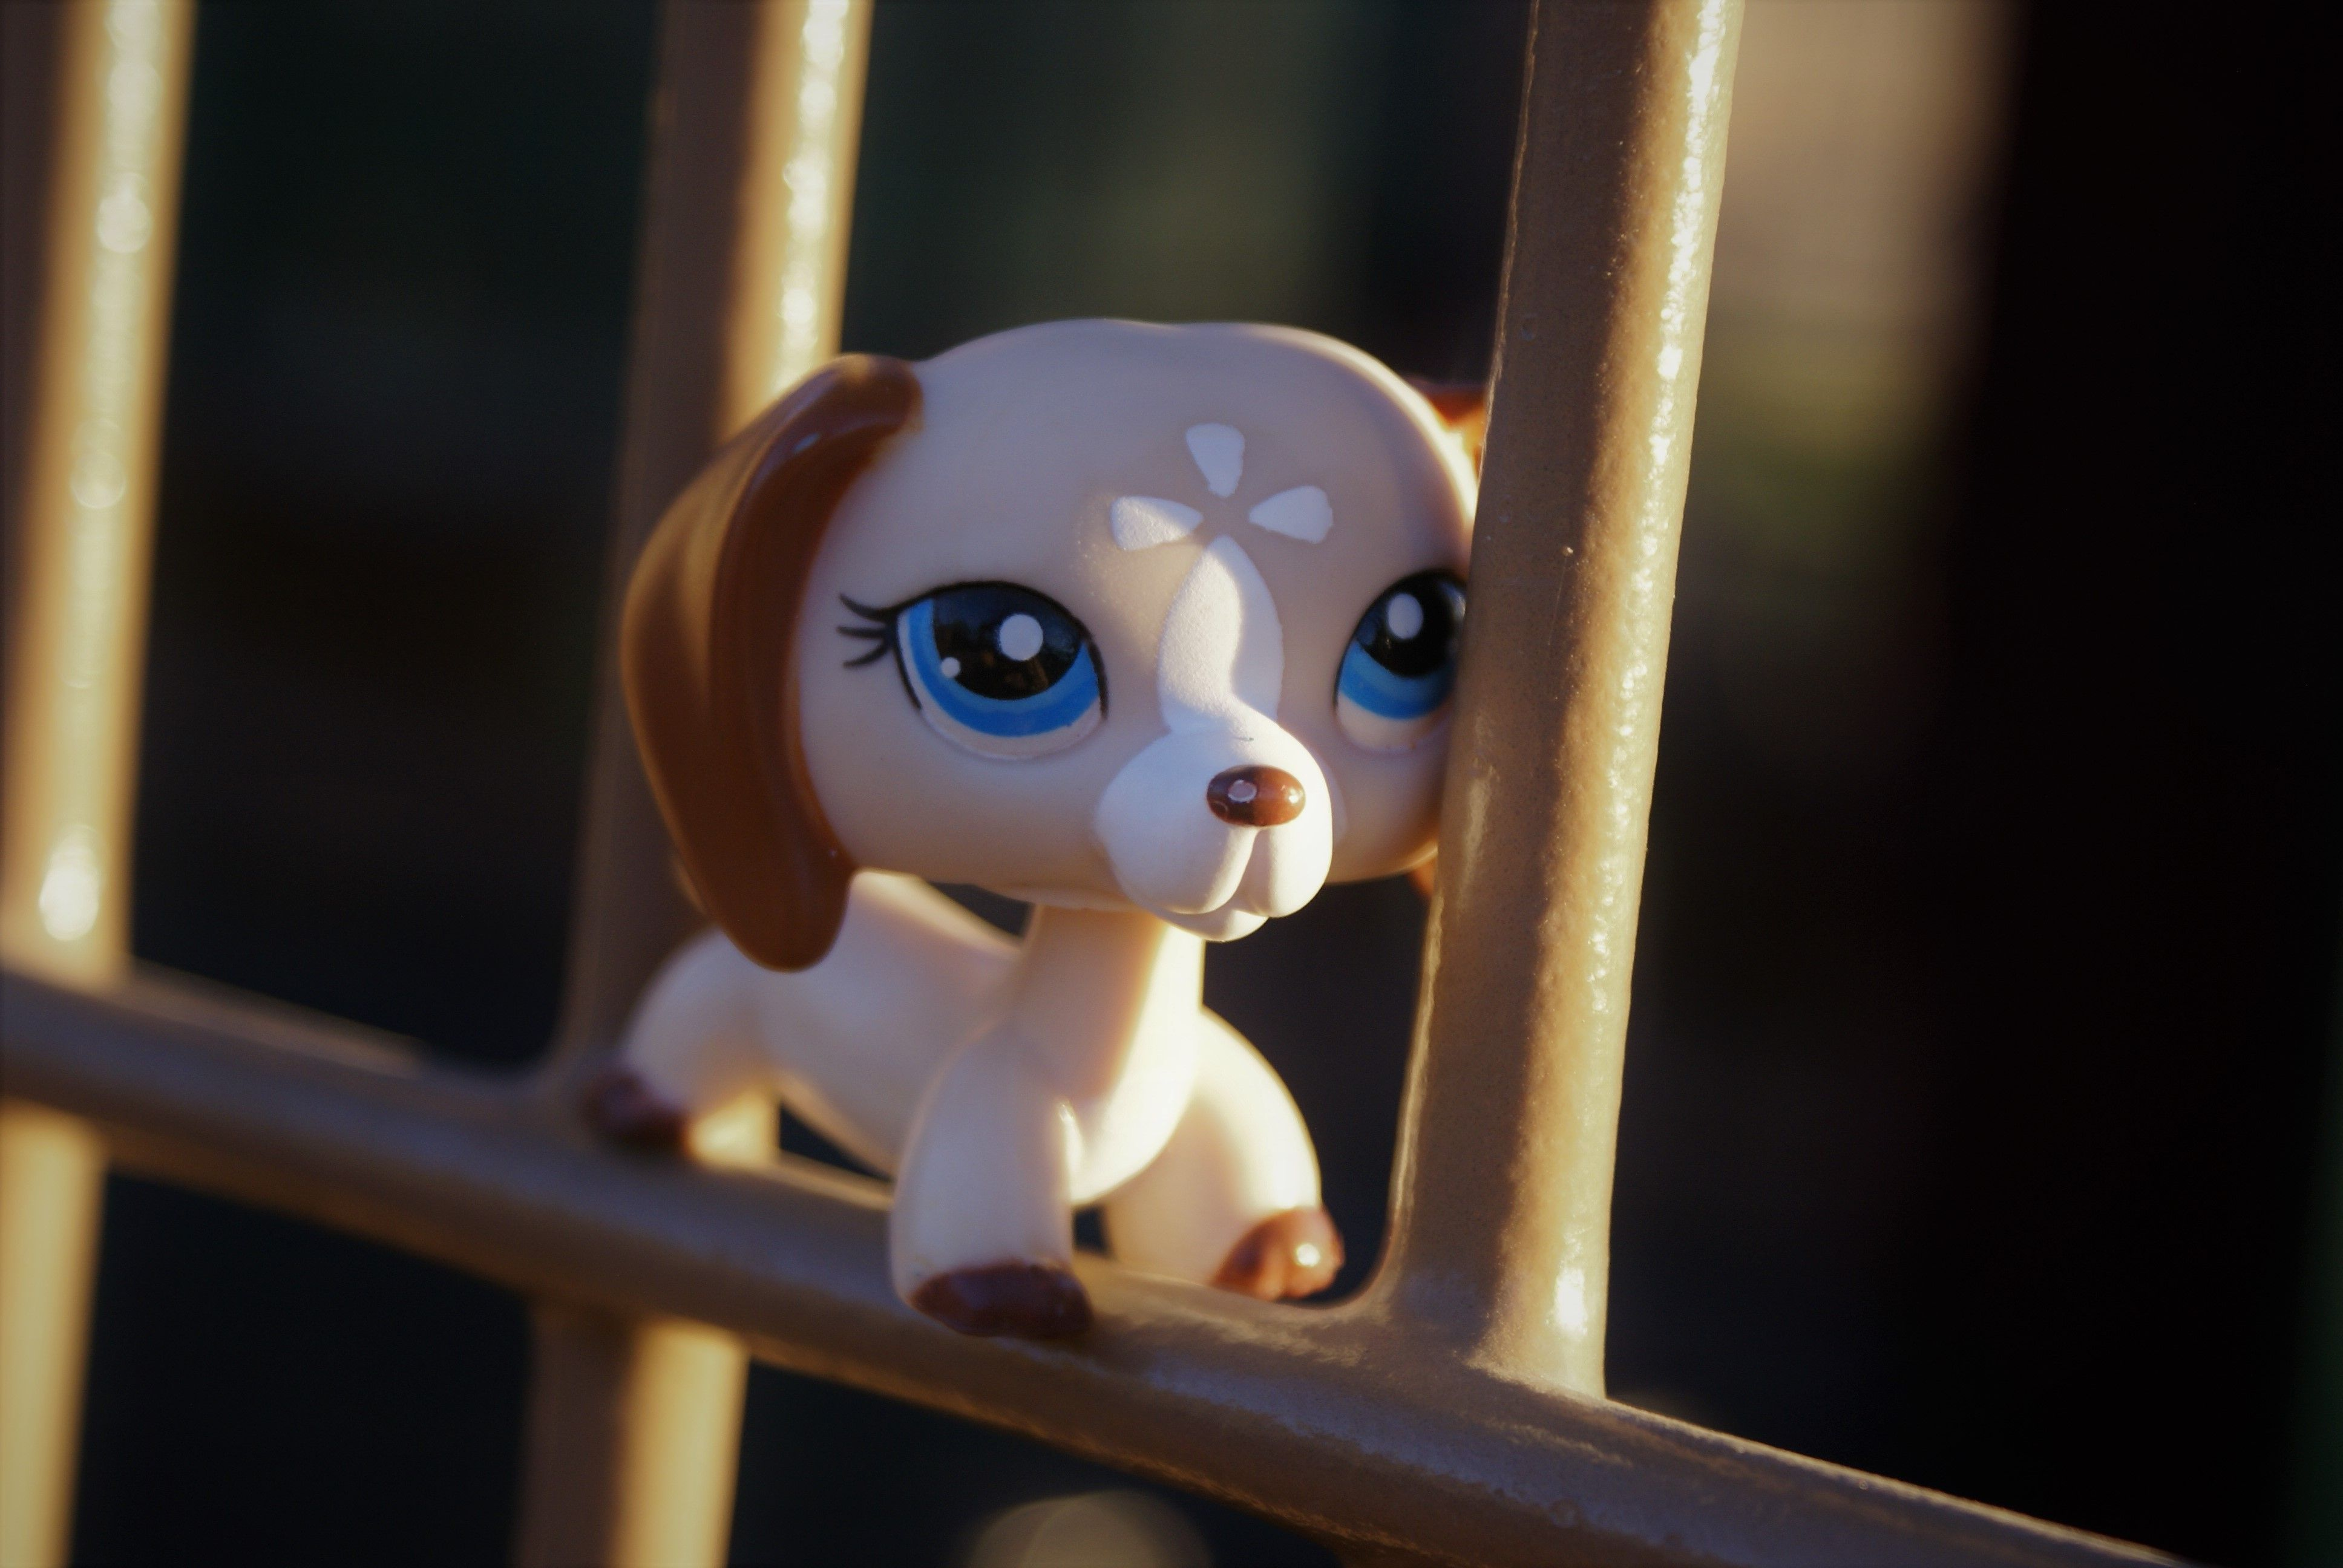 Lps Dachshund Lps Dog Lps Pets Lps Drawings